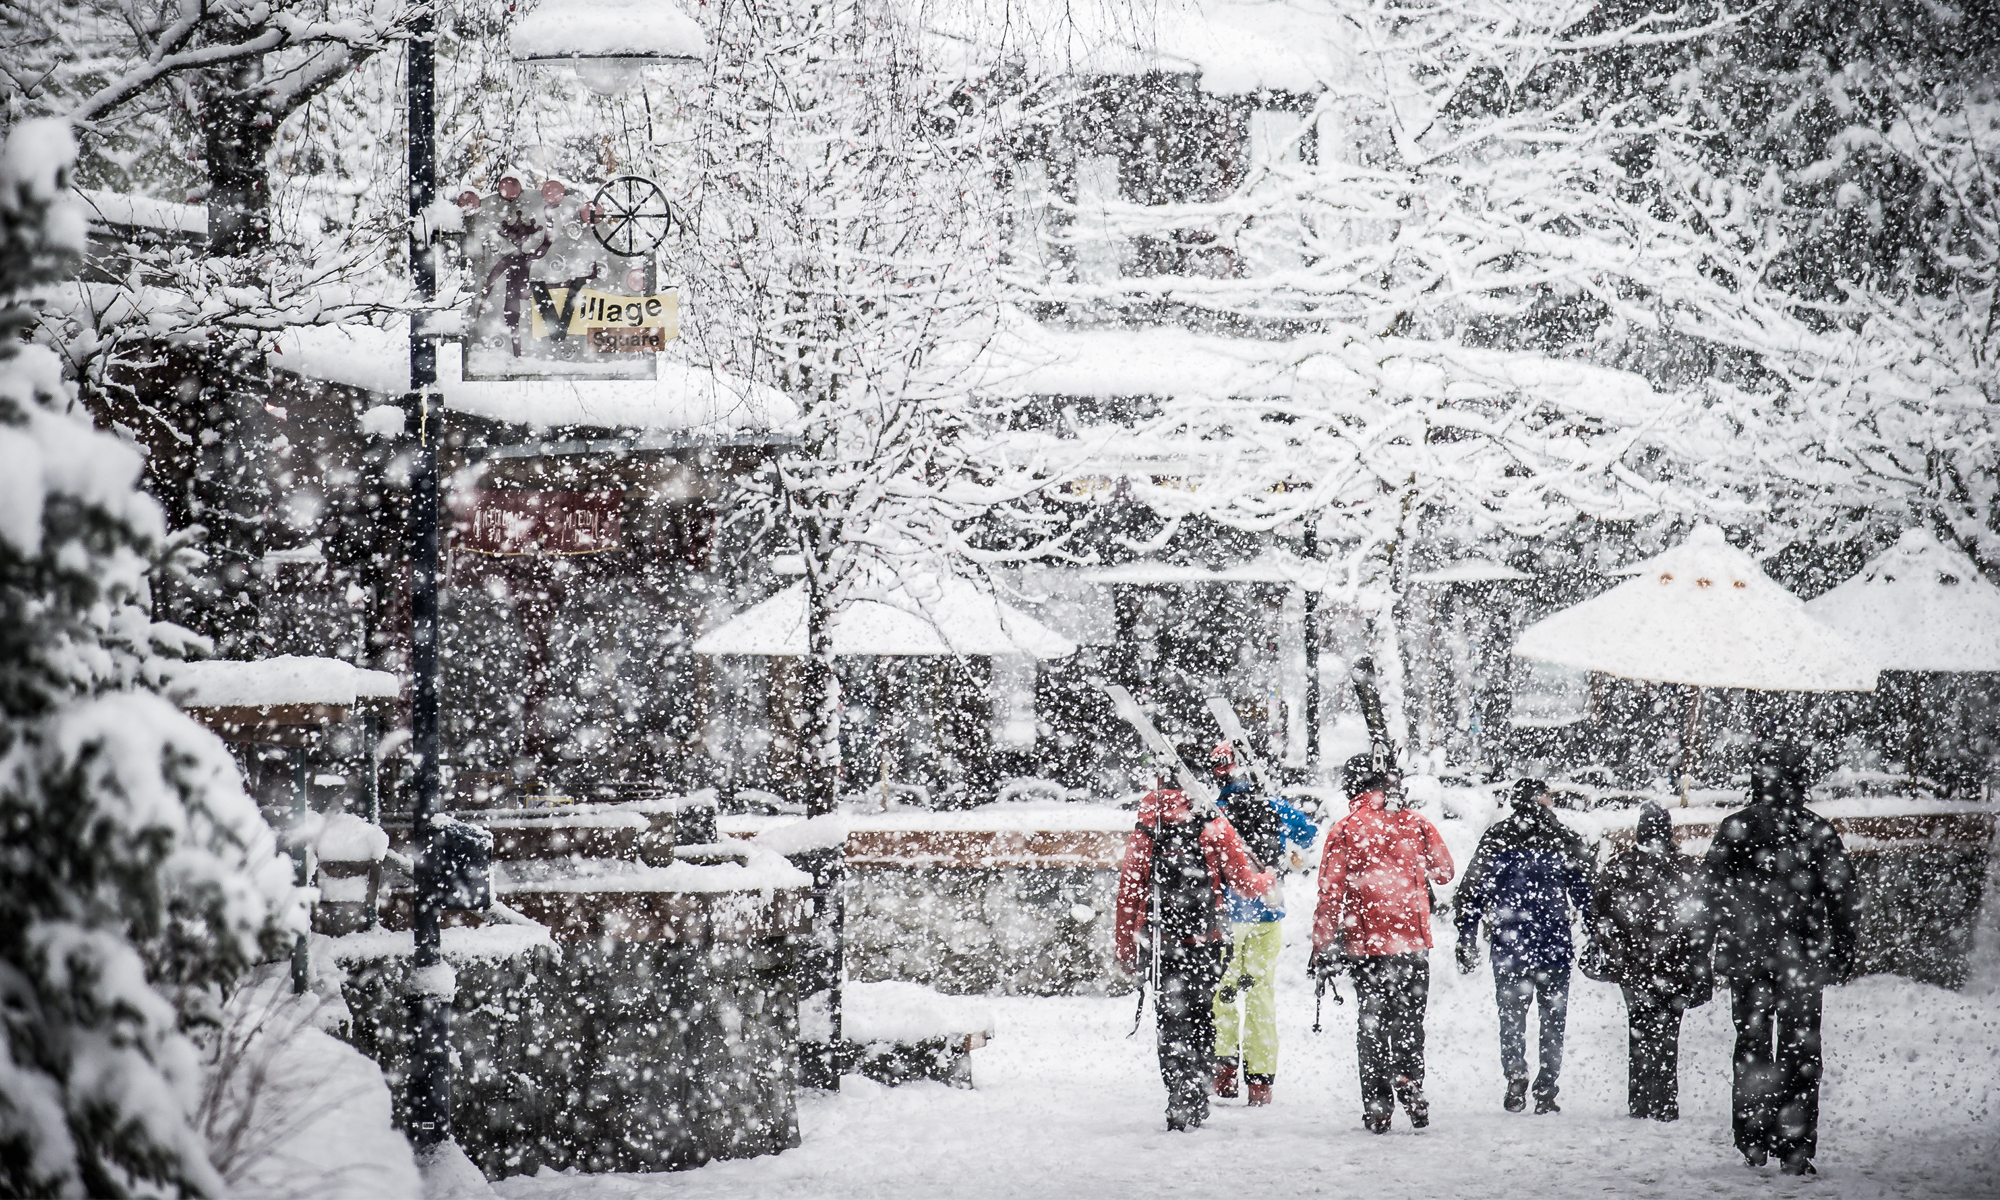 Just another day in Whistler. Photo by Blake Jorgensen.